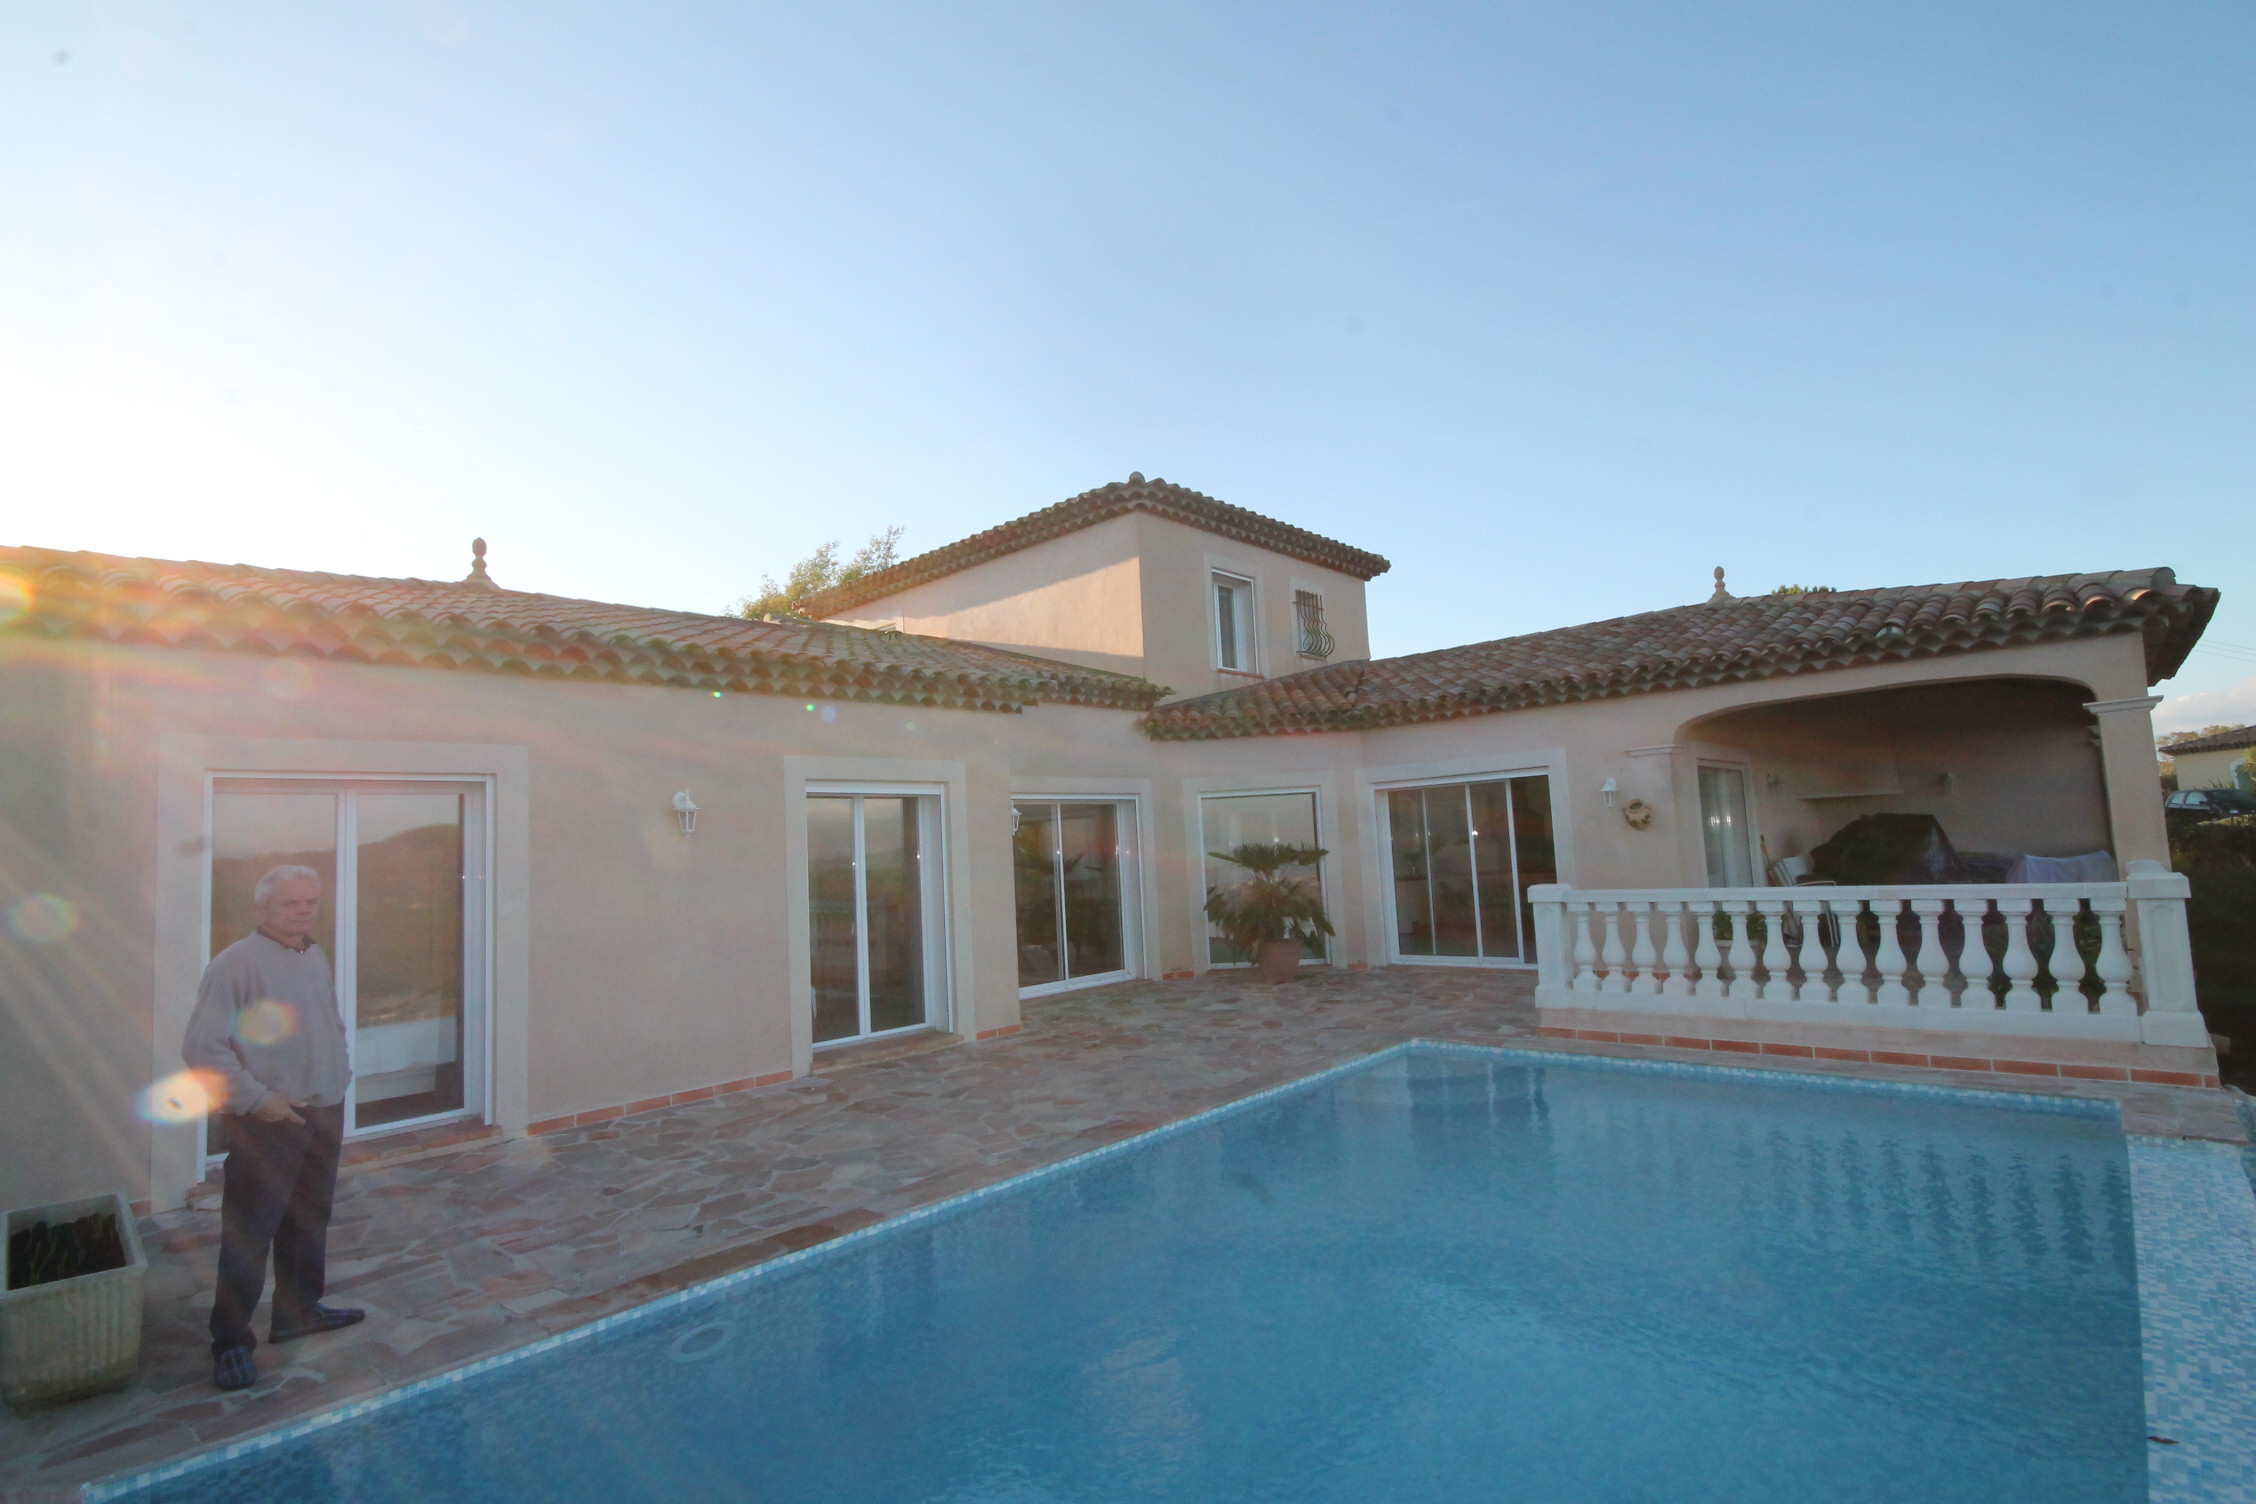 Adrets de l'esterel Holiday Rental, villa, 12 people, AL102 - Photo